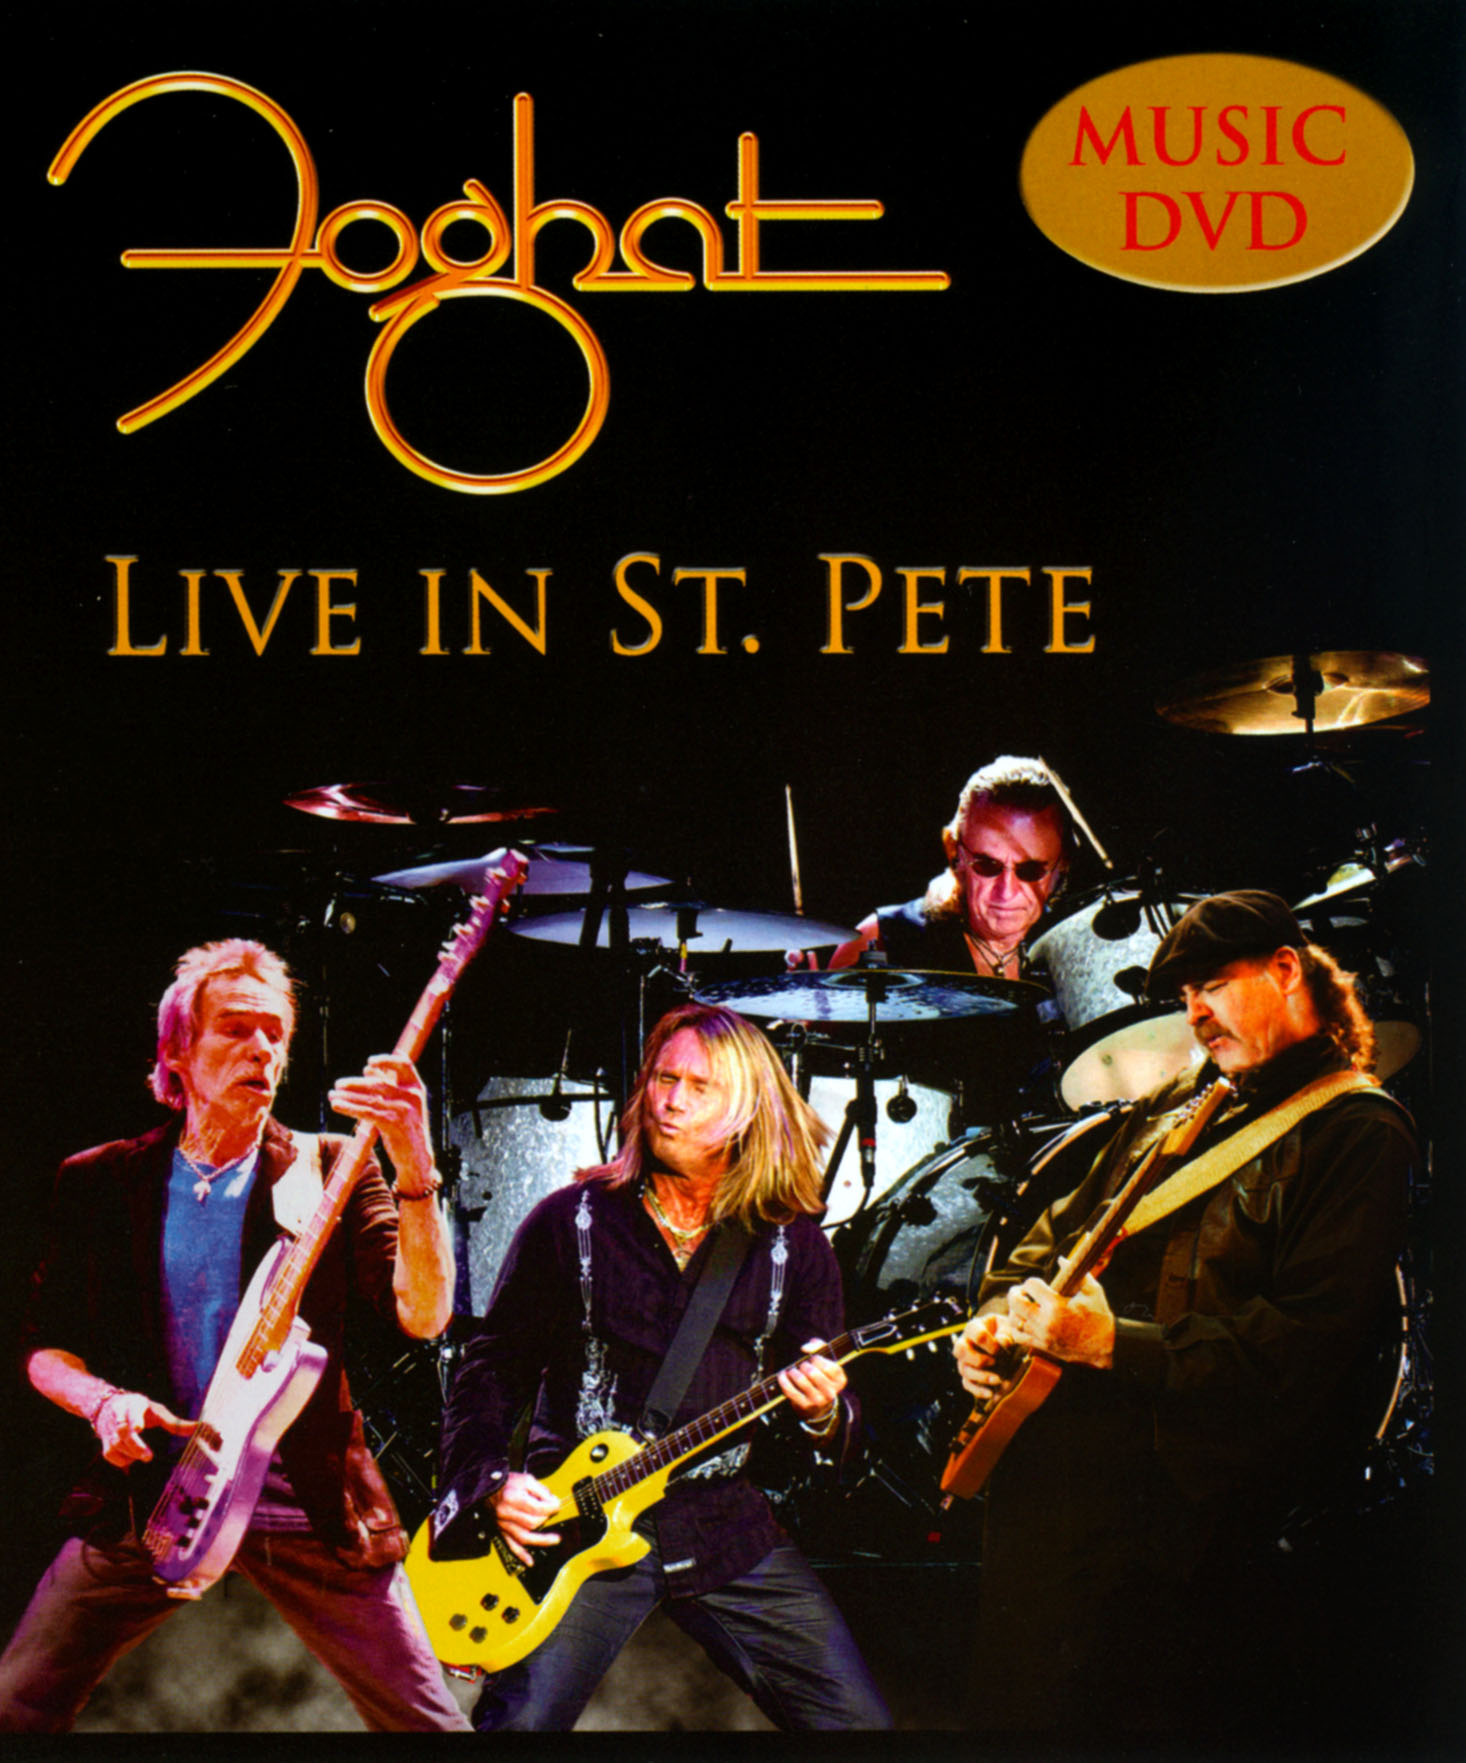 Foghat: Live in St. Pete